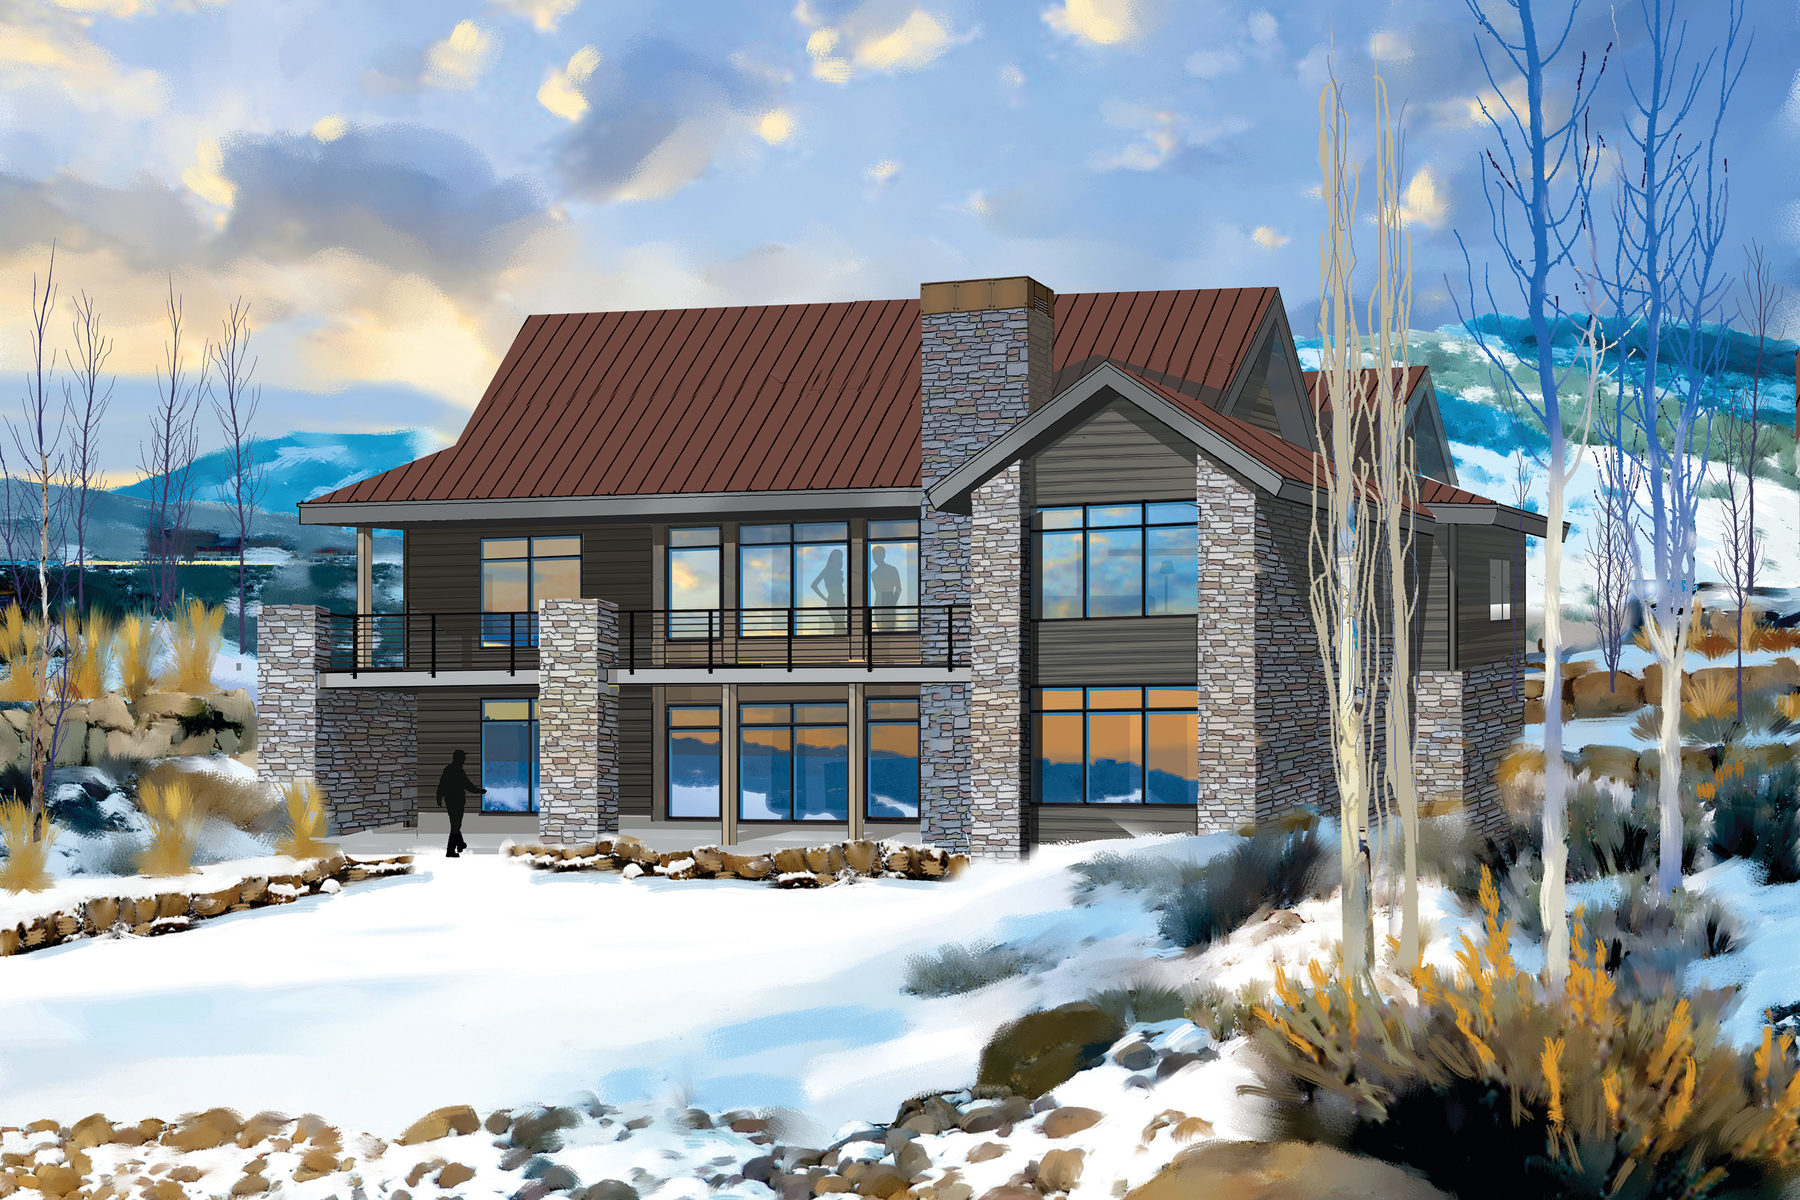 Villa per Vendita alle ore New Nicklaus Golf Cabin Promontory 6533 Golden Bear Loop West Park City, Utah, 84098 Stati Uniti